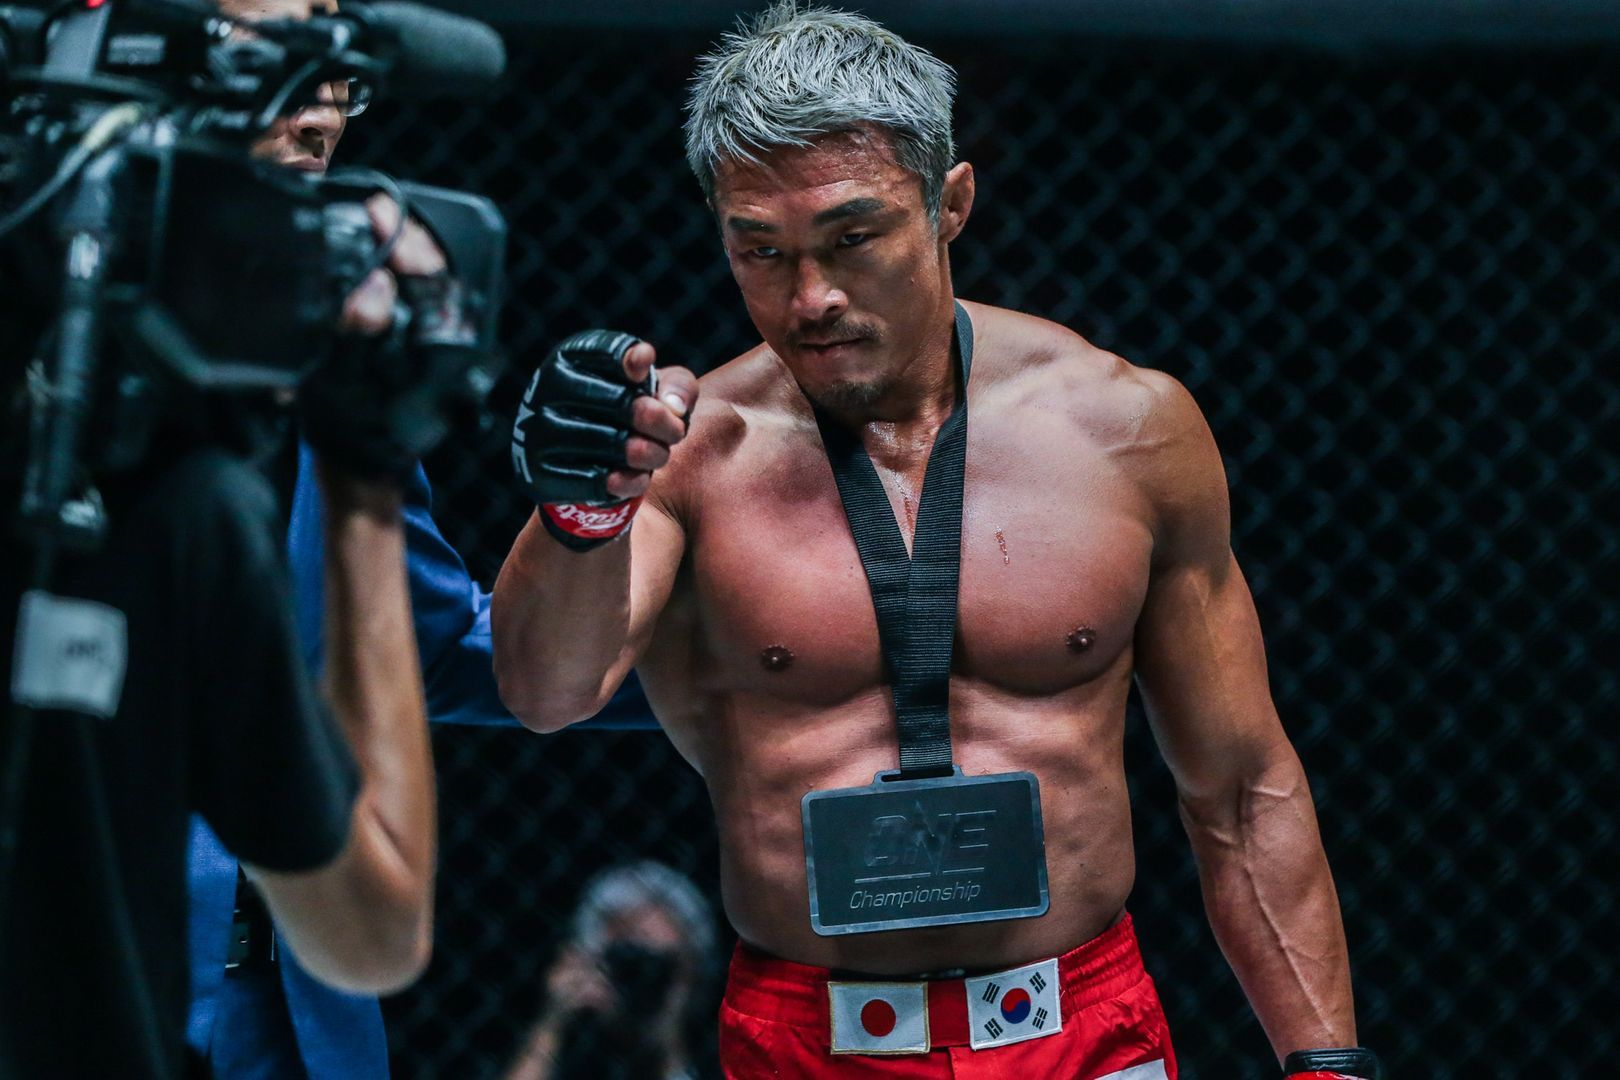 Yoshihiro Akiyama celebrates his win against Sherif Mohamed at ONE KING OF THE JUNGLE